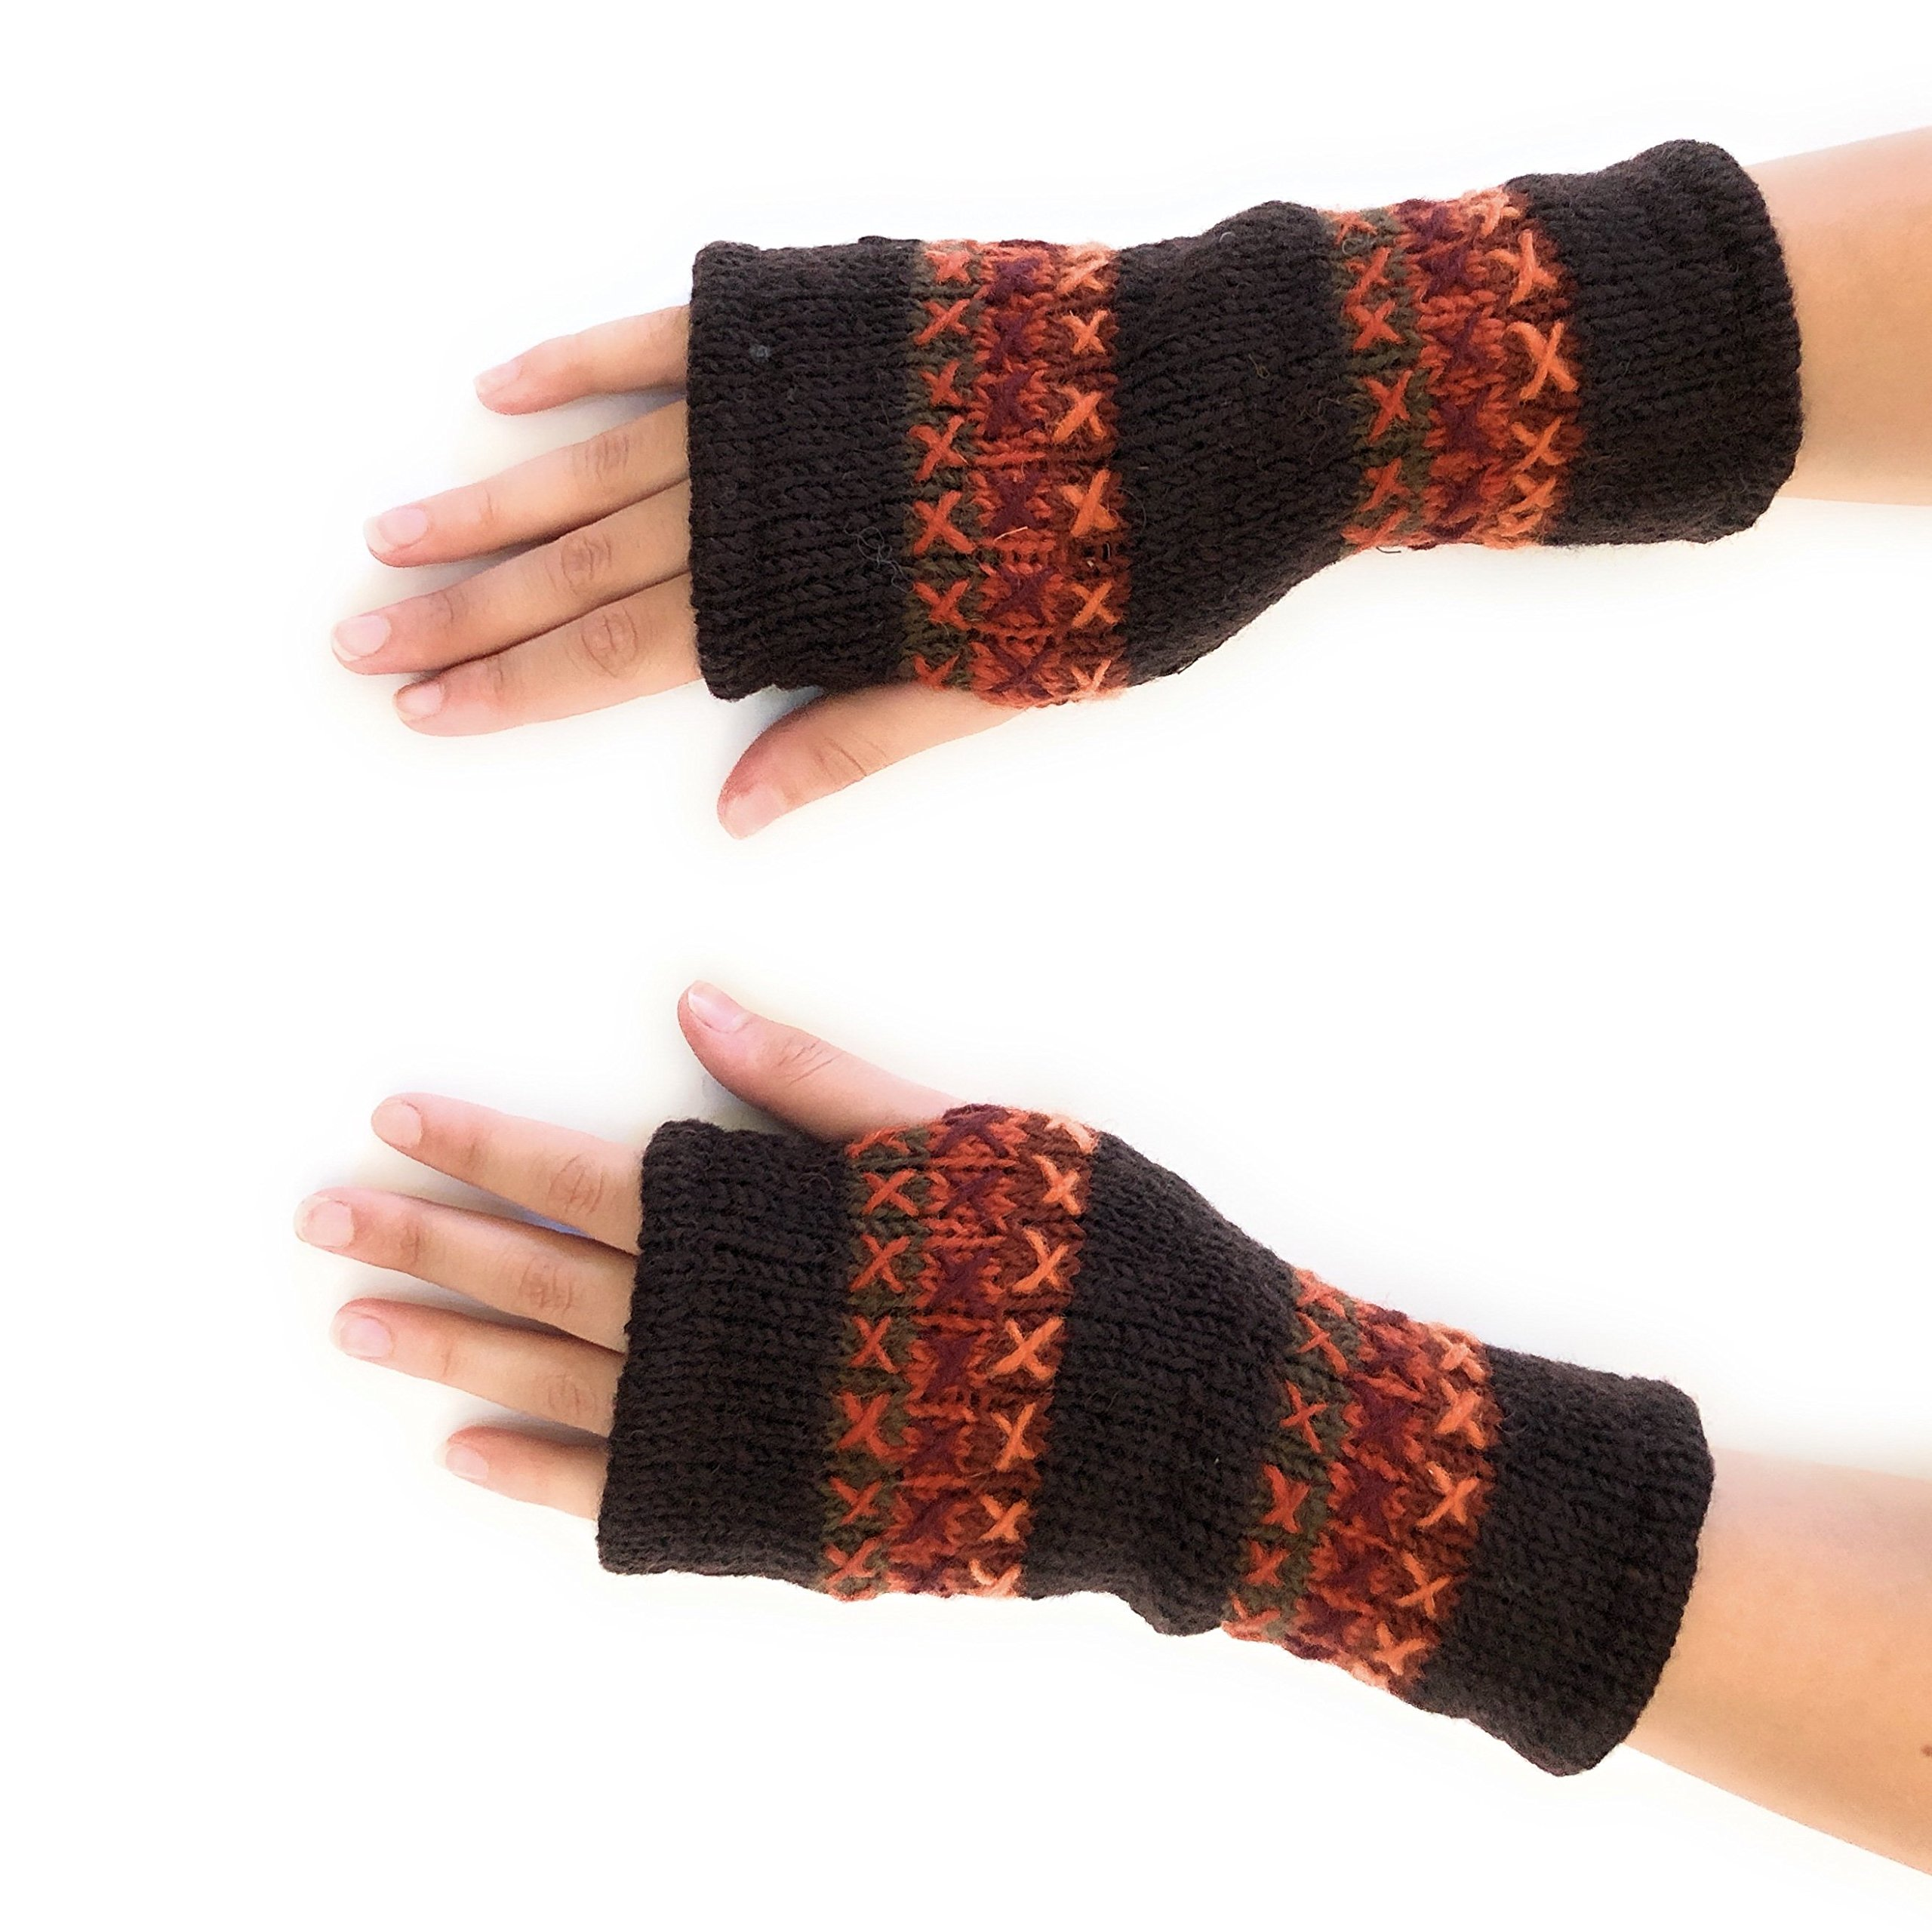 Hand Knit Fingerless Graphic Winter Wool Texting Gloves Mittens Warm Fleece Lined (Rust)